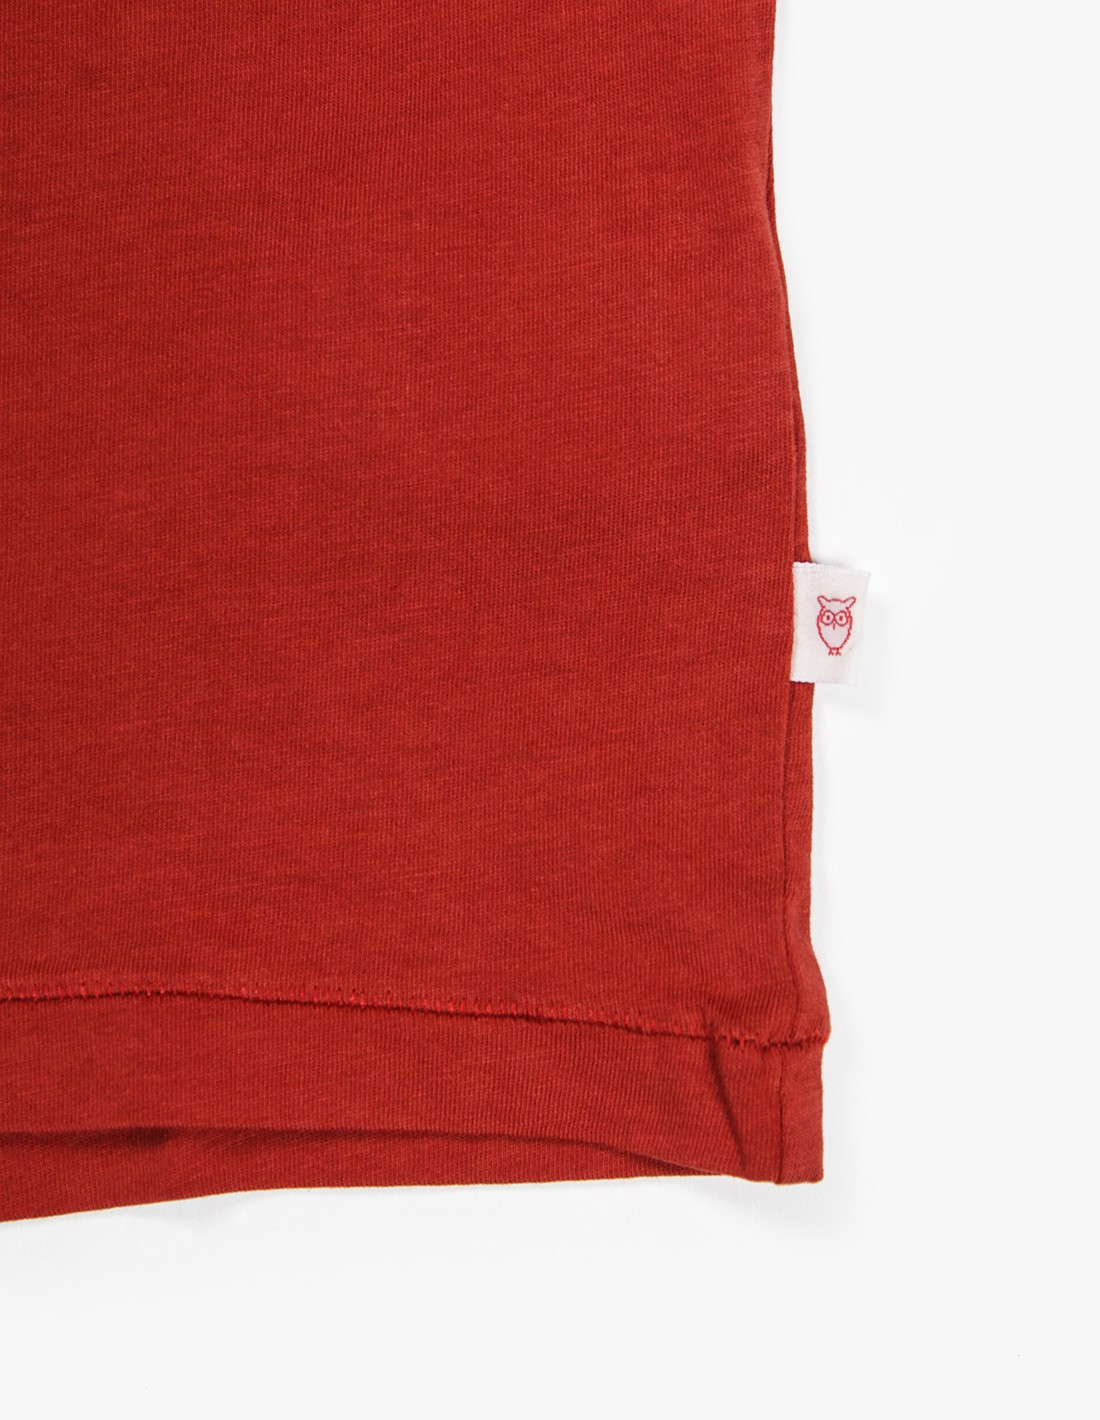 Knowledge Cotton Apparel Basic Pocket Tee in Red Ochre